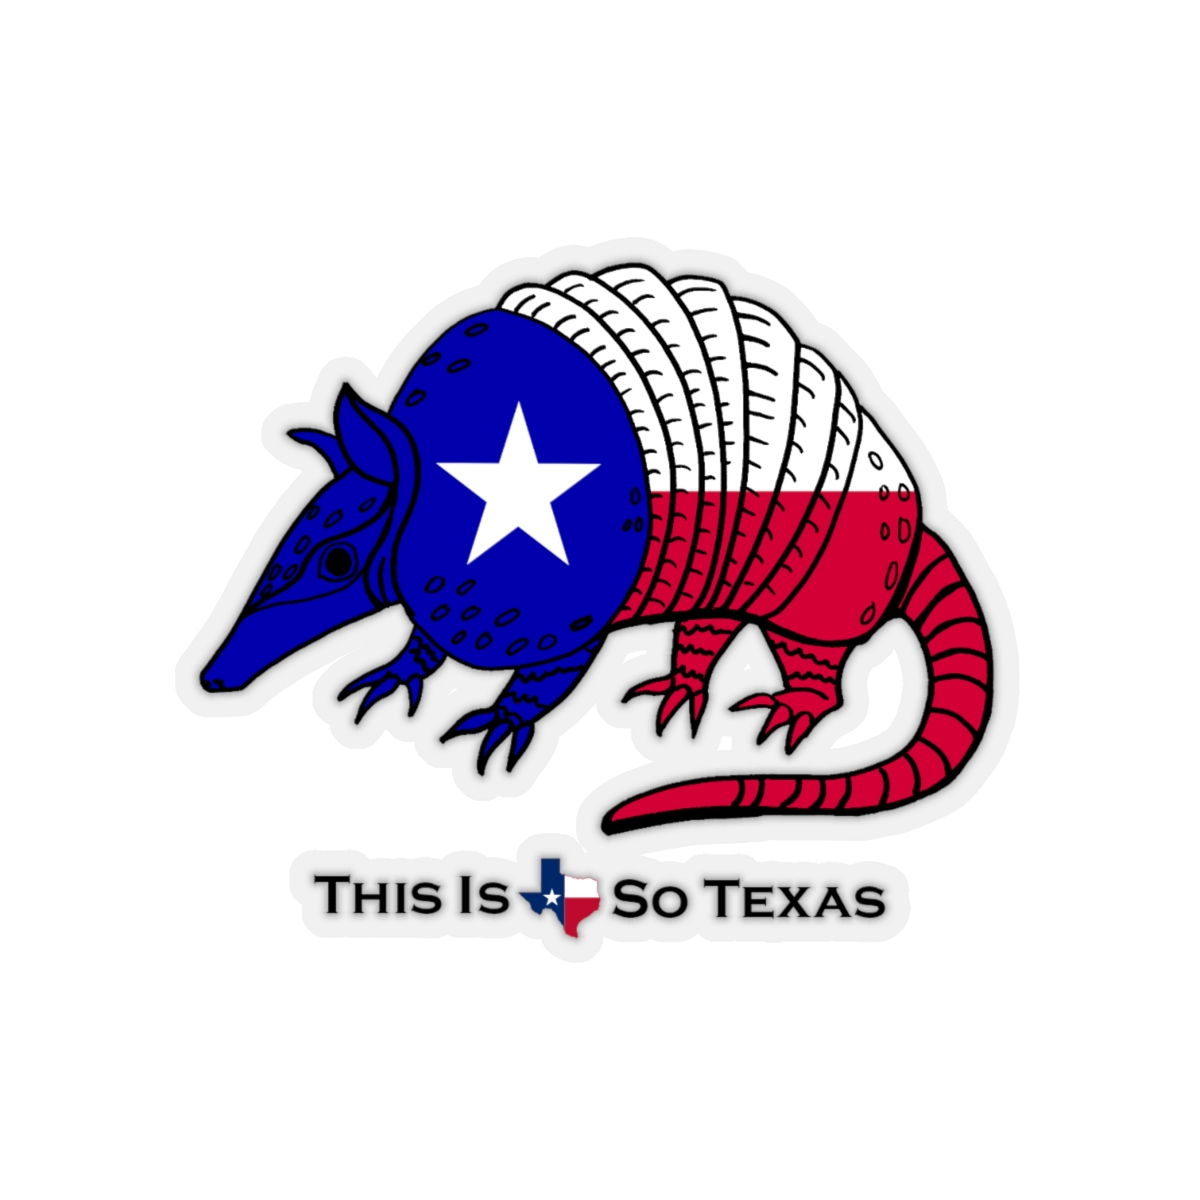 This Is So Texas: TX Armadillo Decal